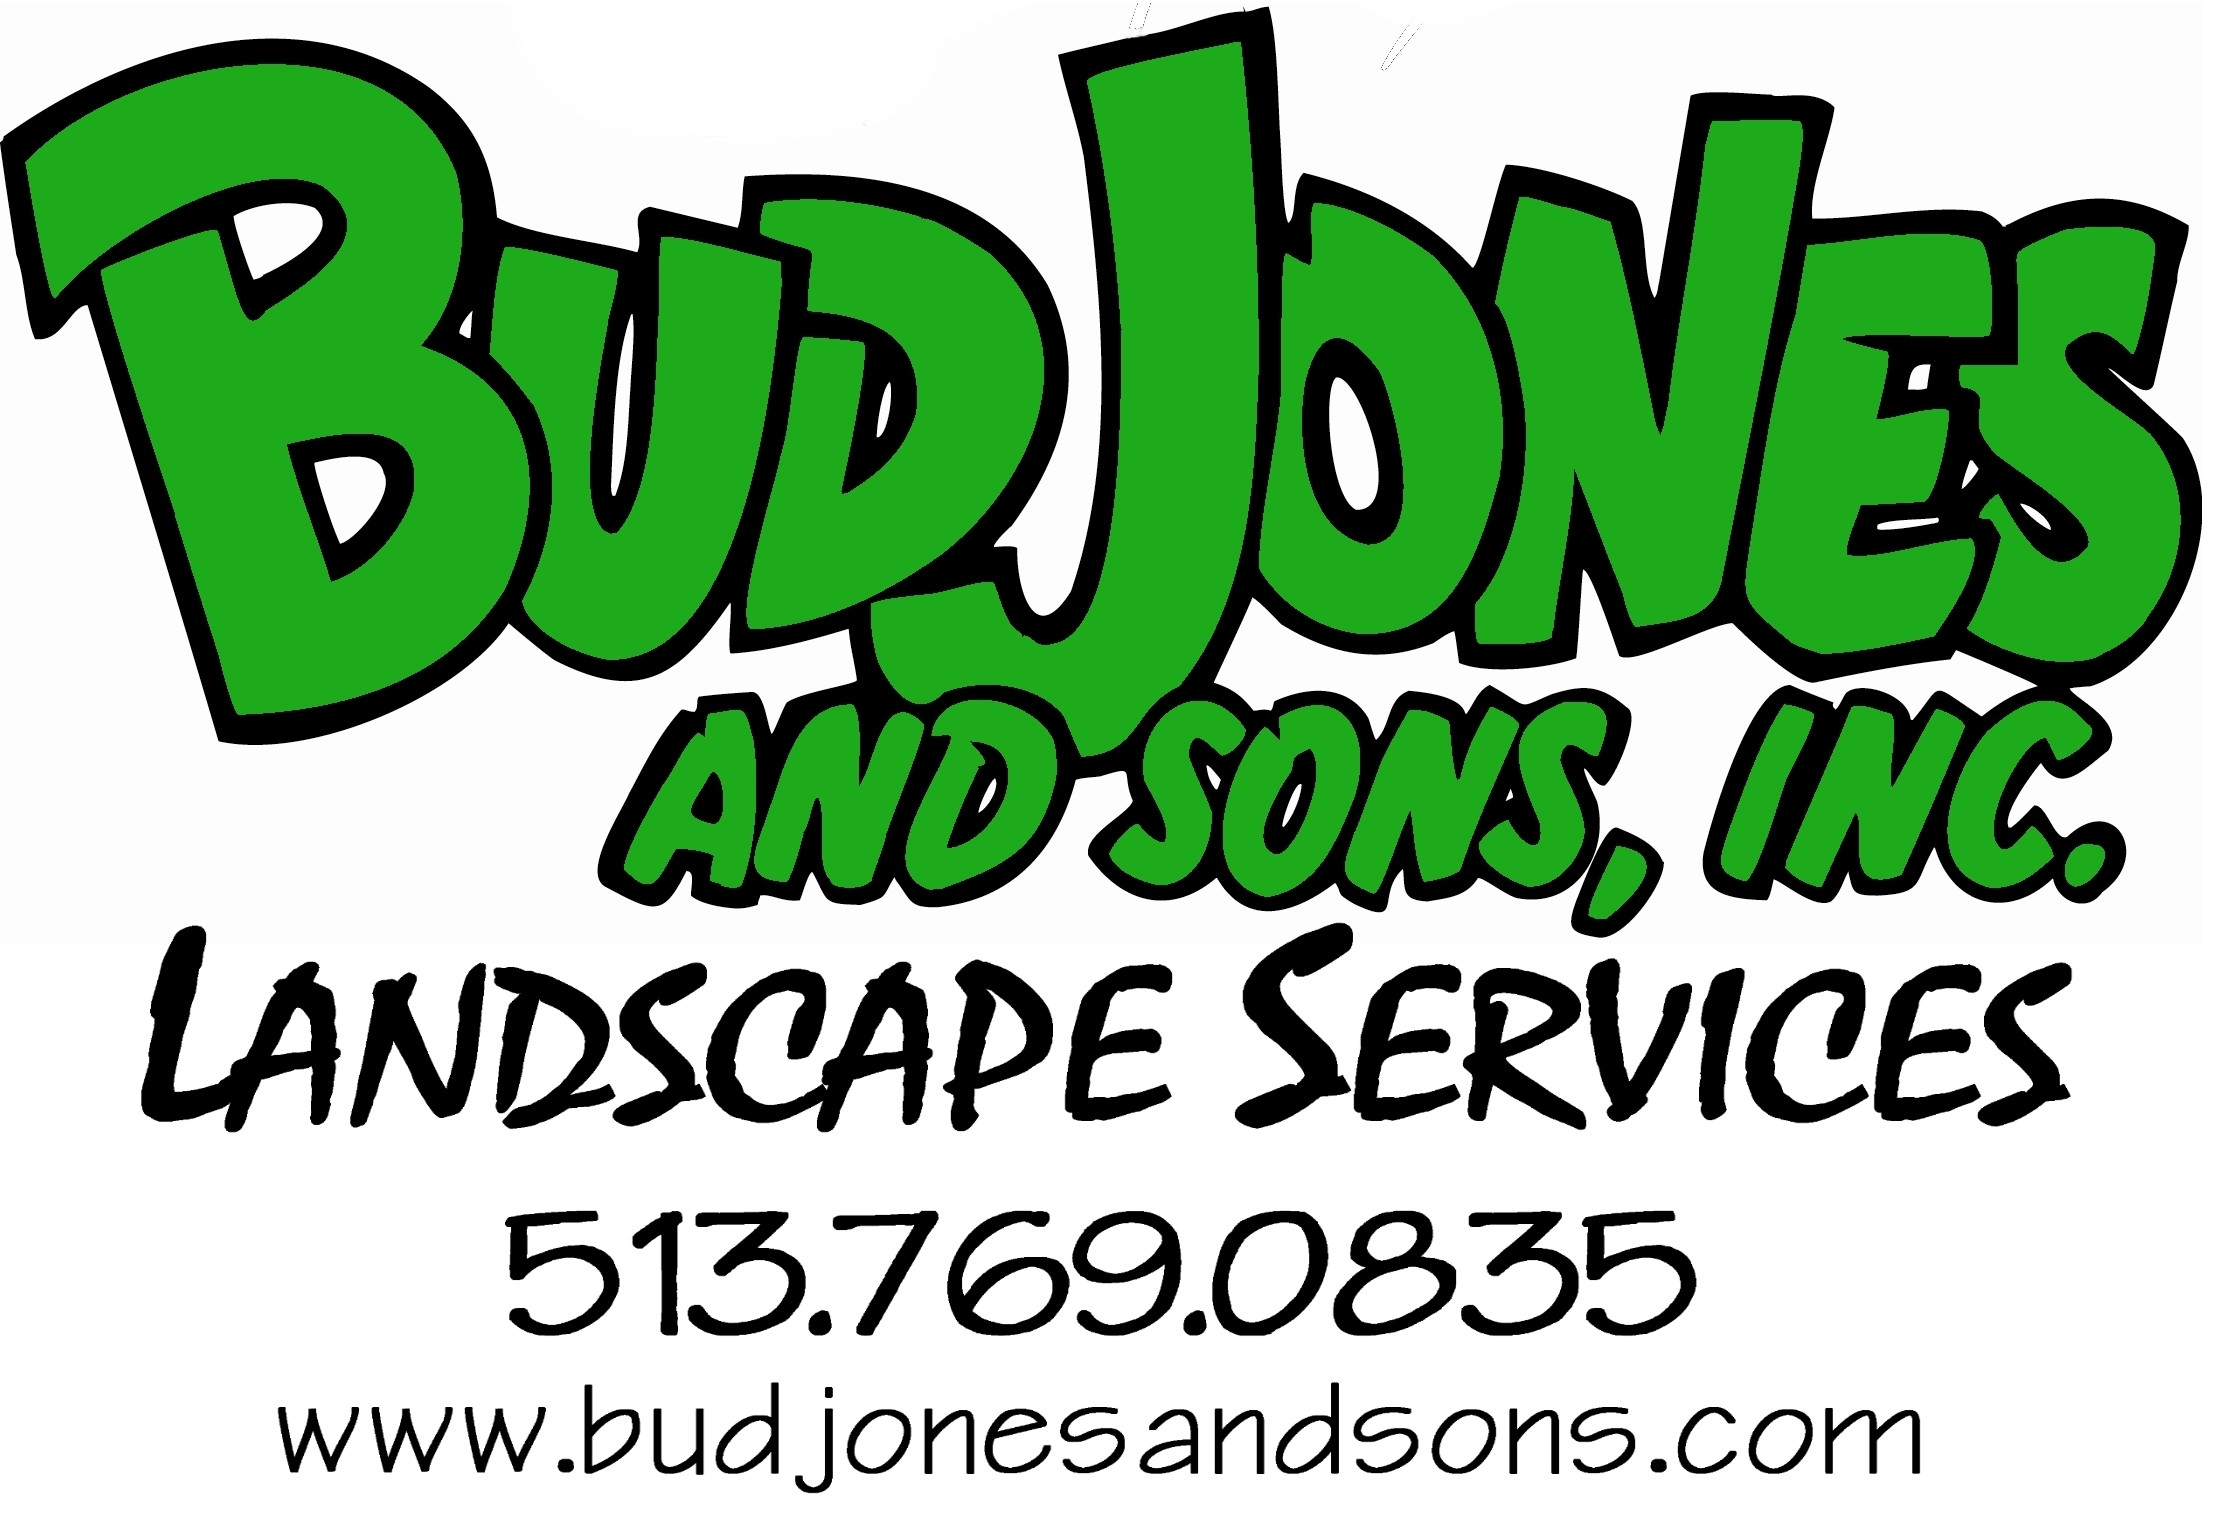 Bud Jones and Sons, Inc.